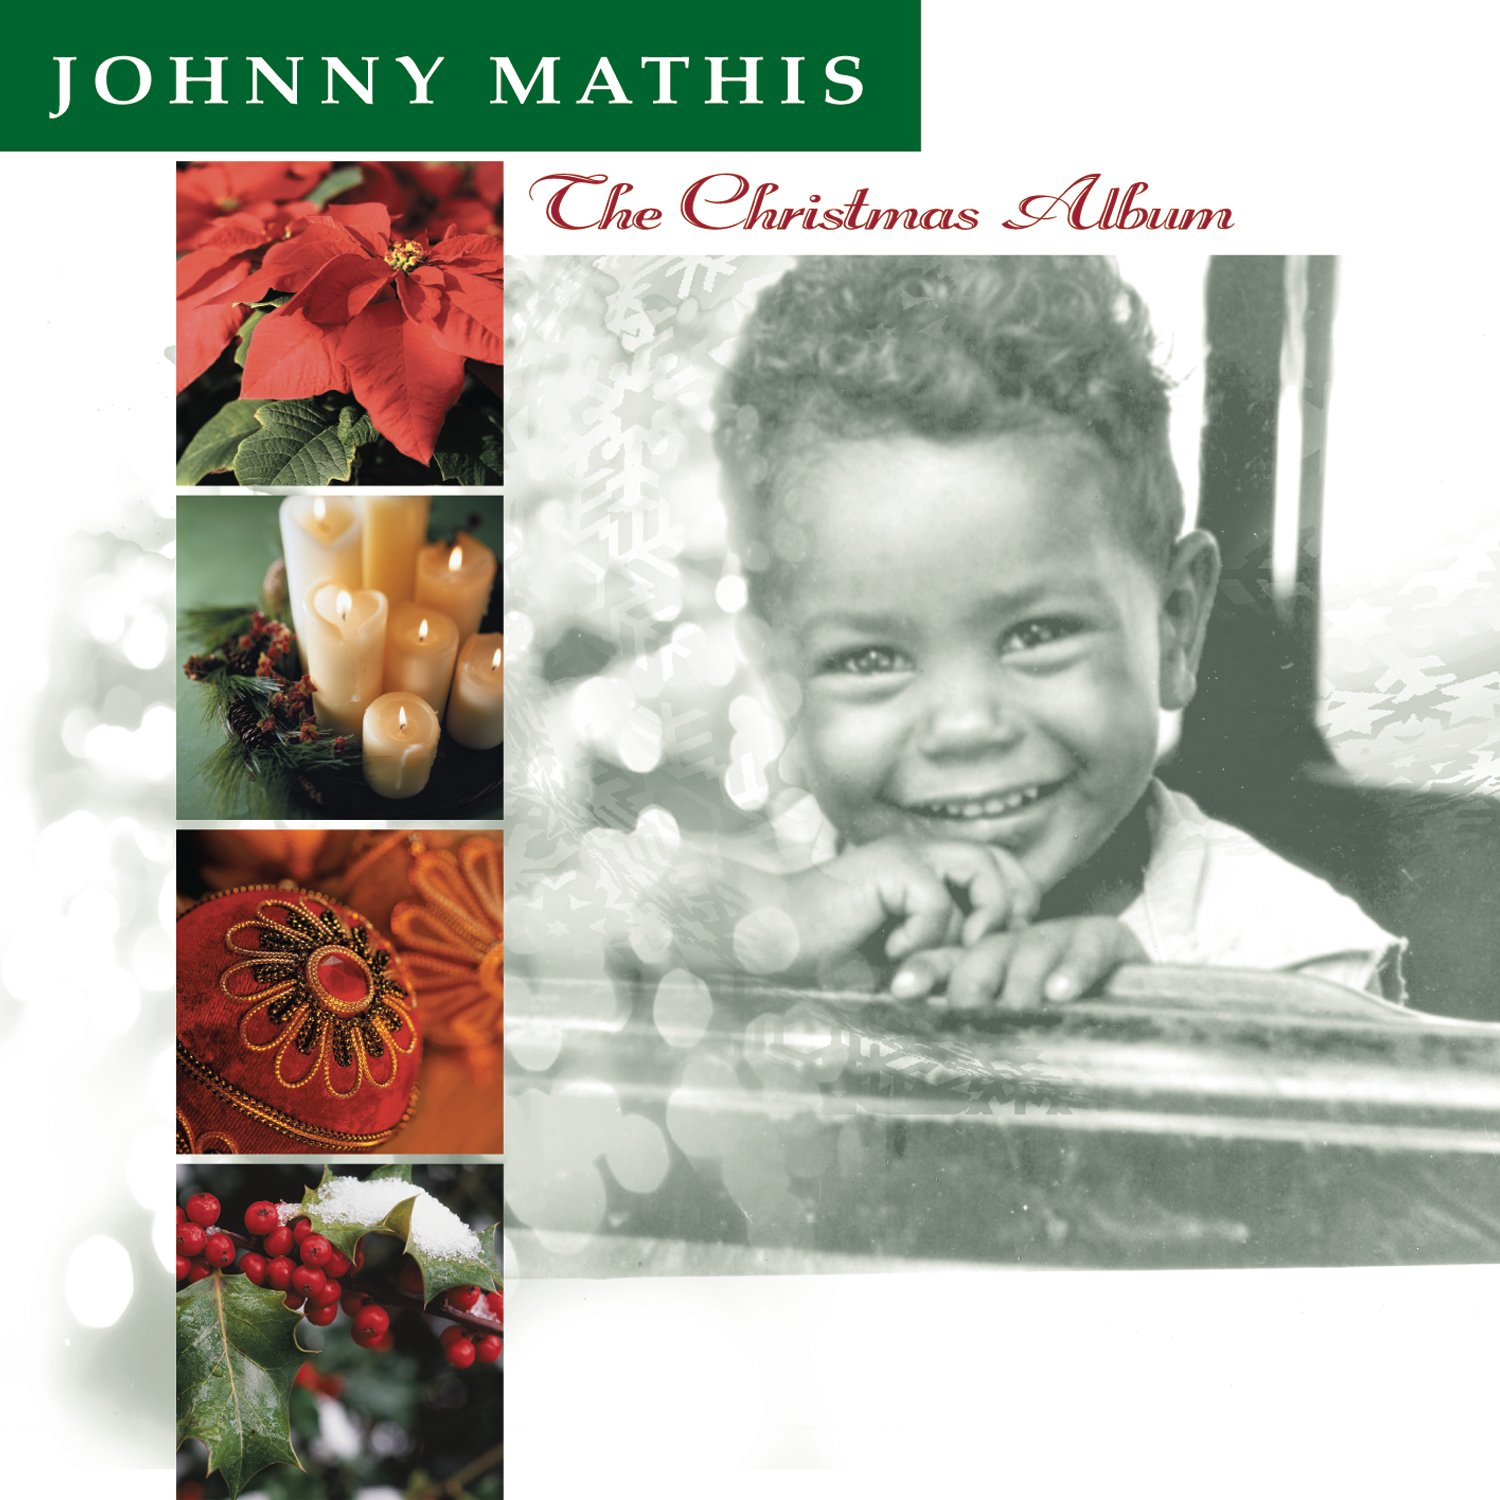 Johnny Mathis - The Christmas Album - Amazon.com Music